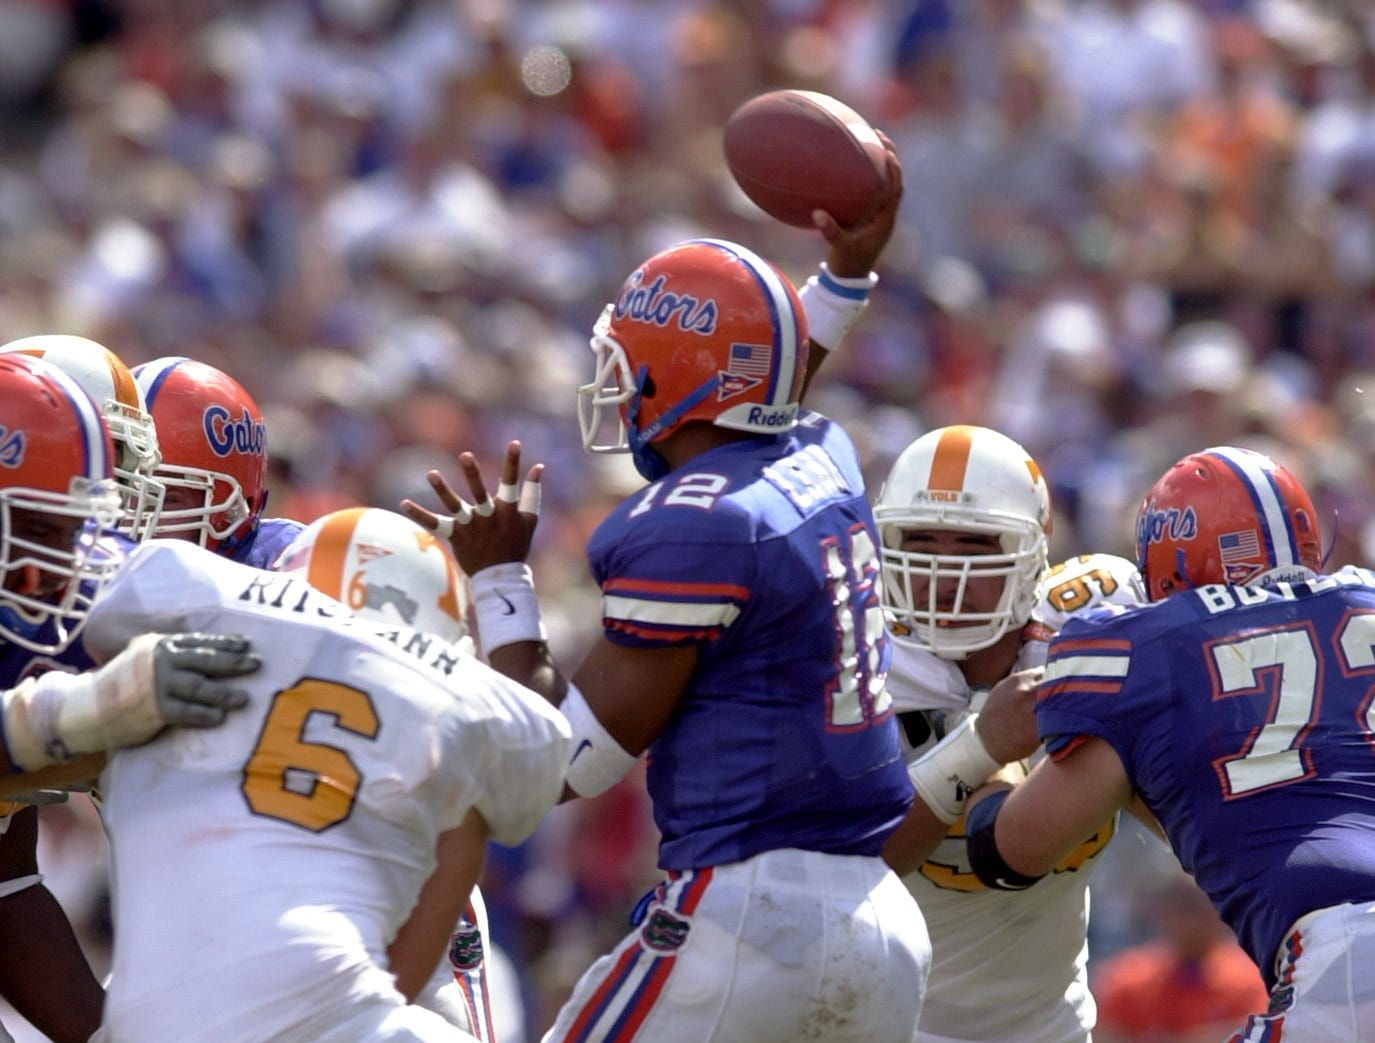 Florida's Chris Leak is pressured by Tennessee's Constantin Riztmann on Saturday in Gainsville.